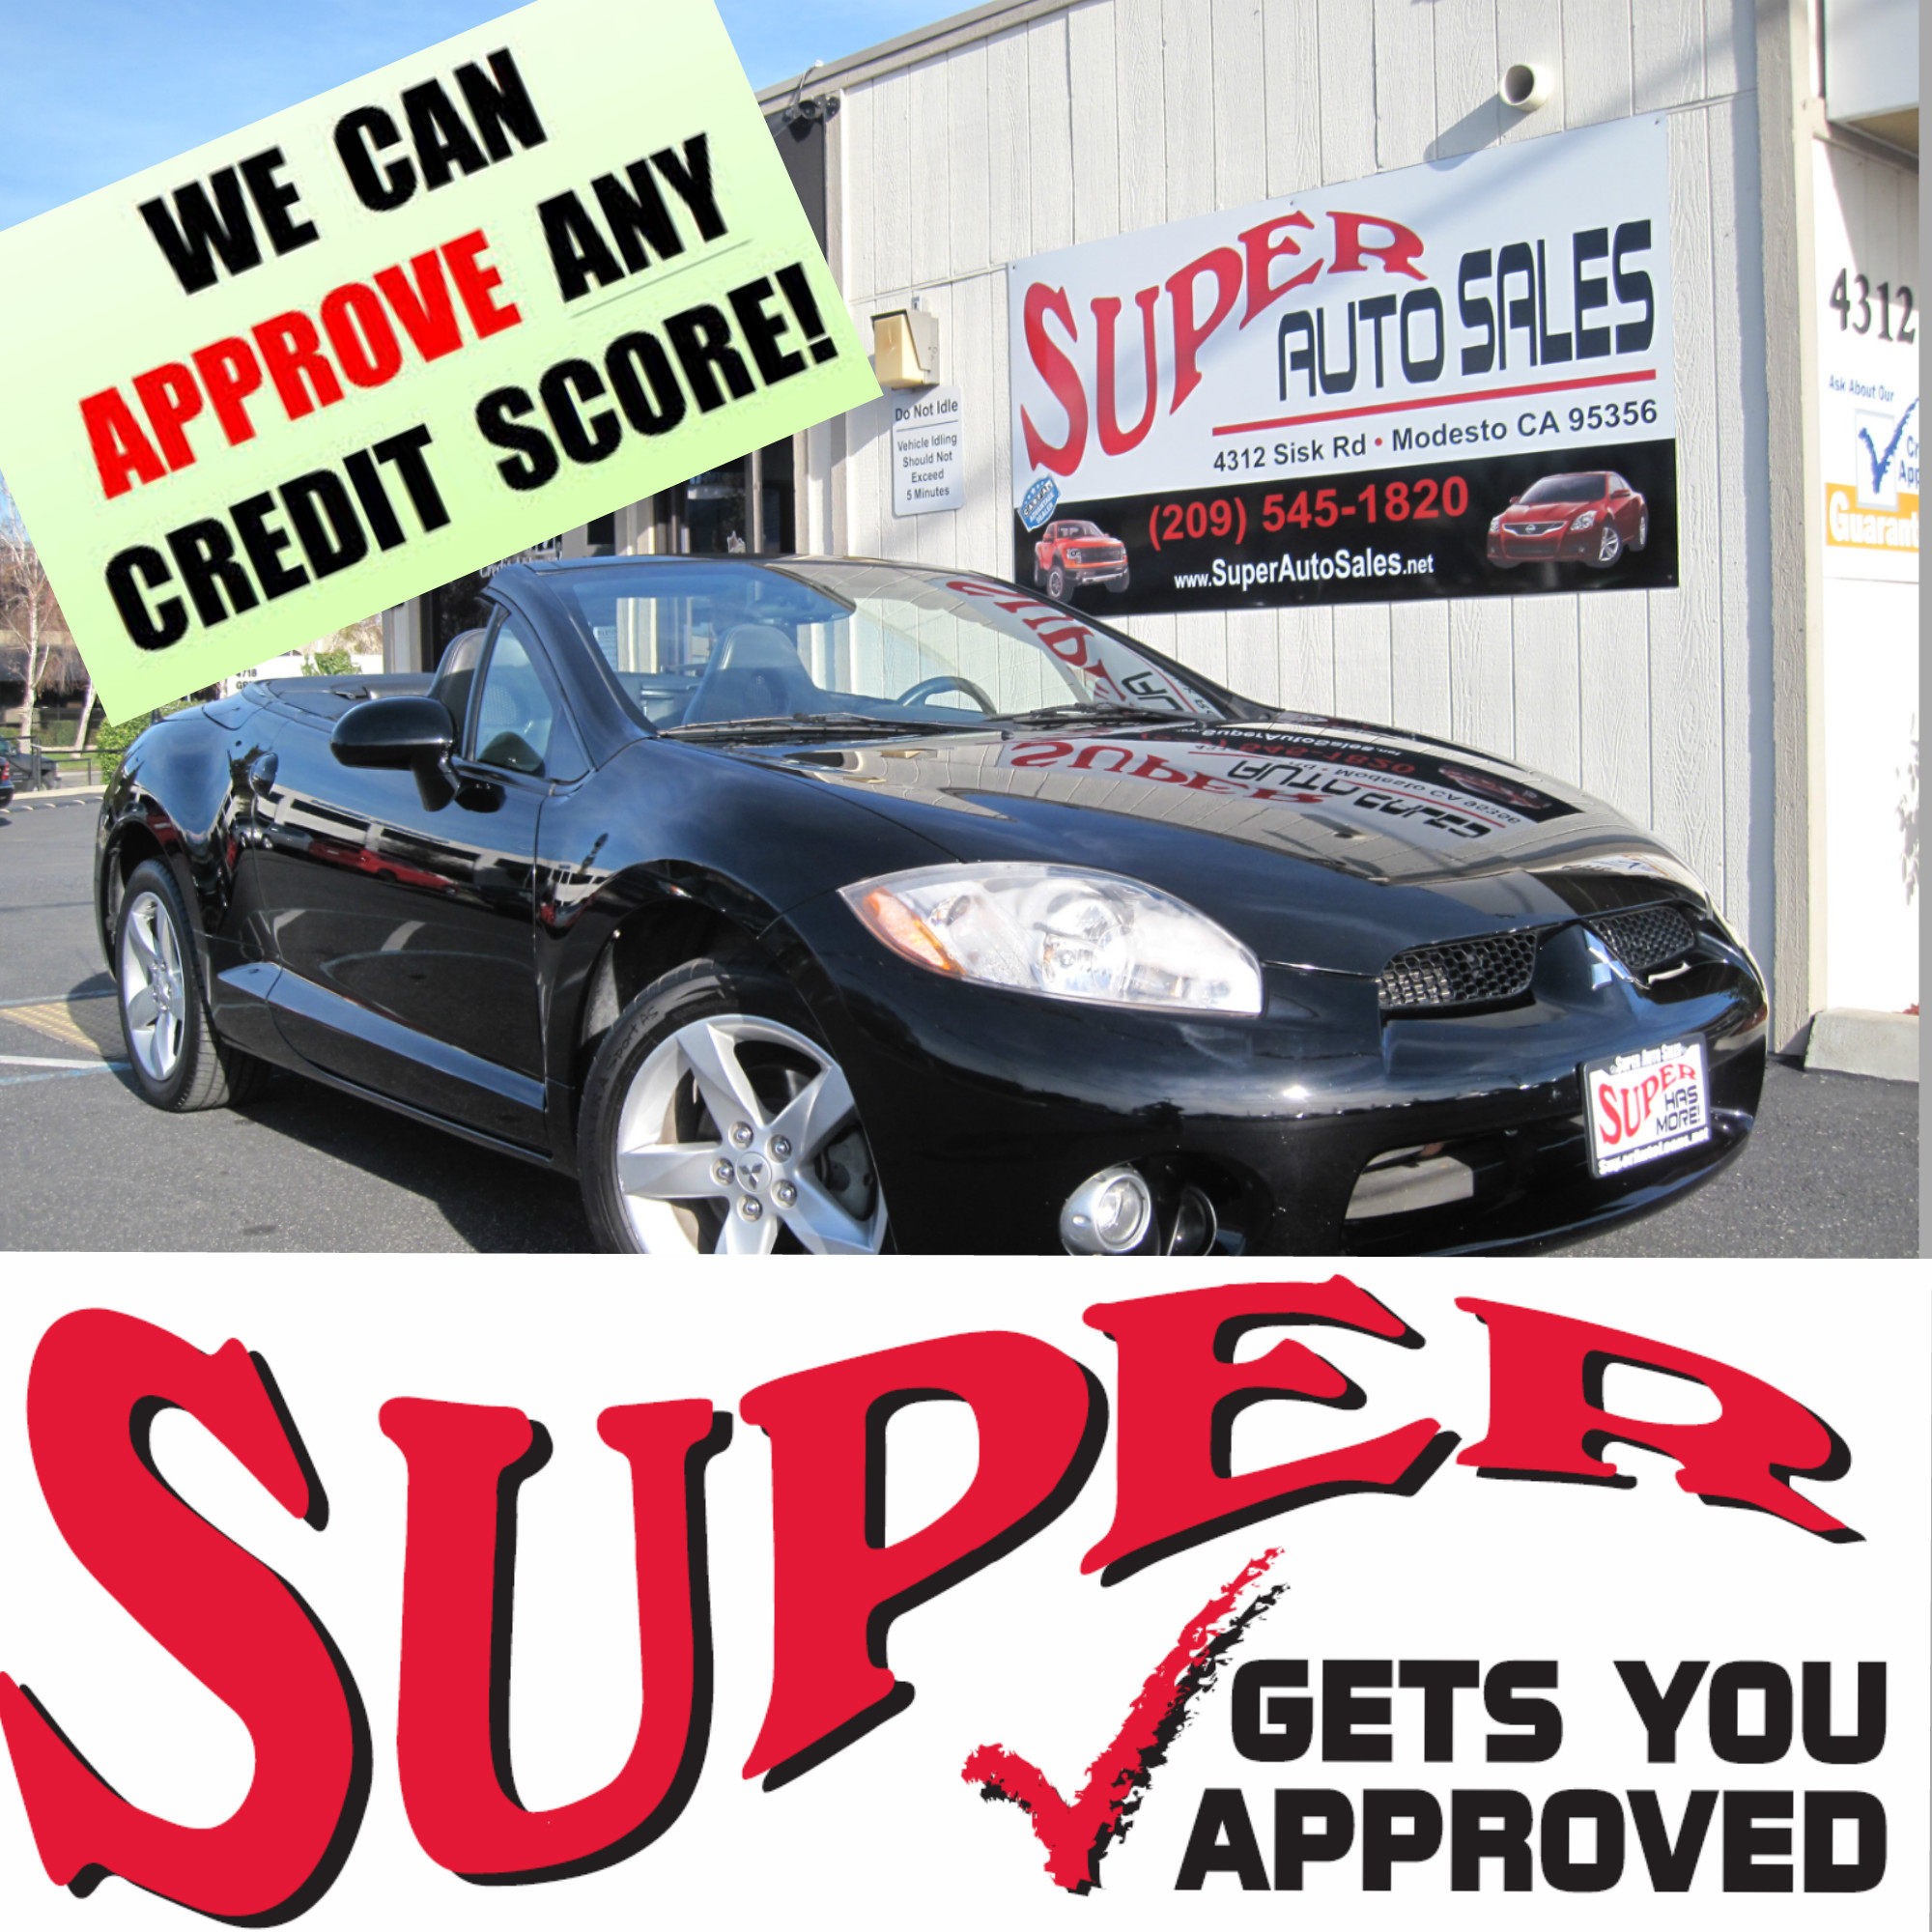 Thompsons Auto Group New Used Cars For Sale Toyota >> Super Auto Sales Used Cars Modesto Ca Dealer ...